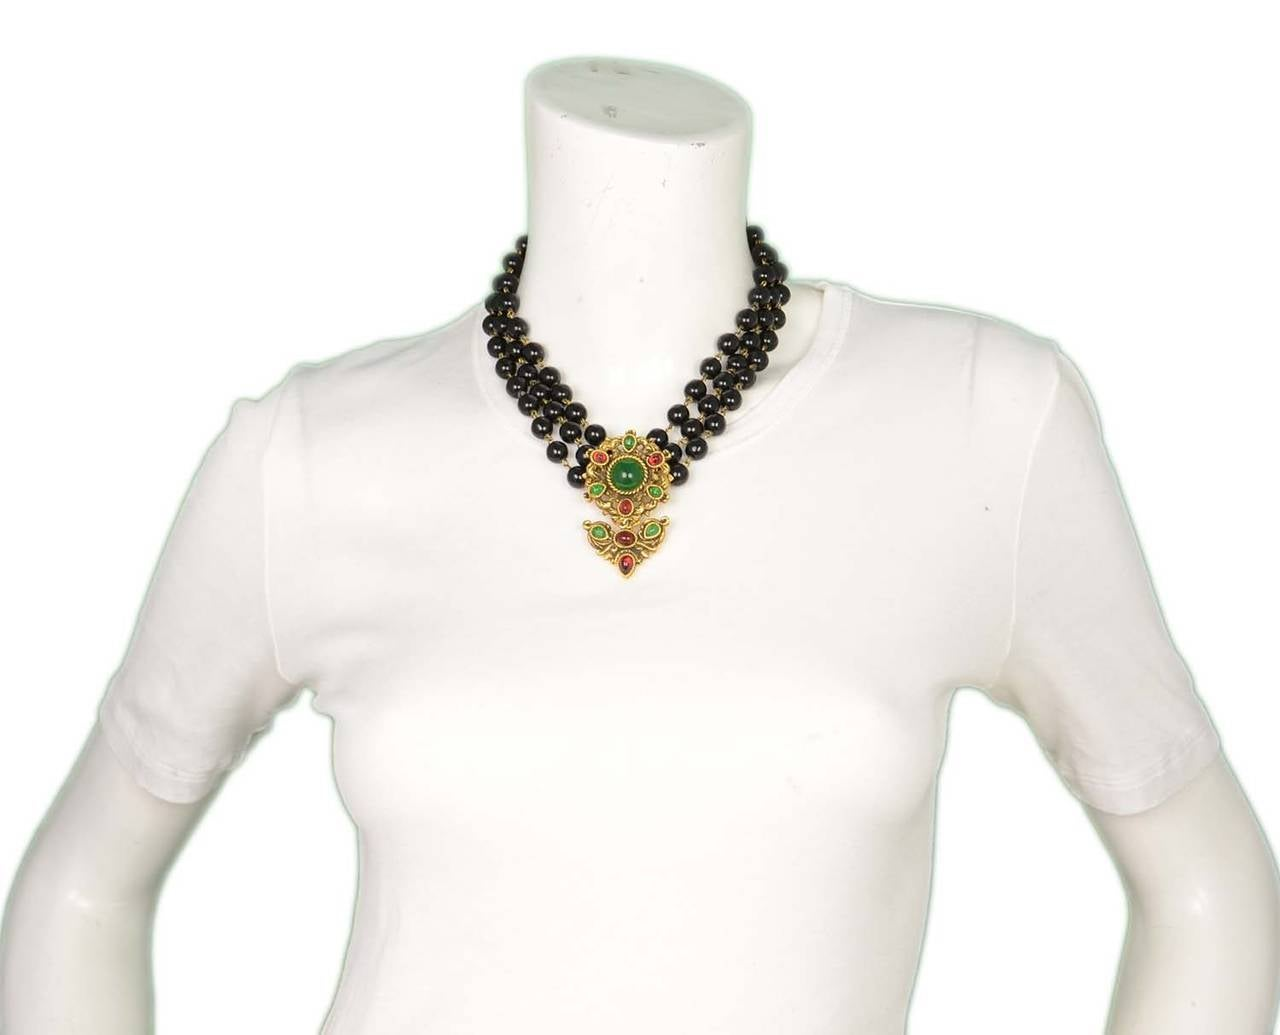 CHANEL Vintage 1985 Black Triple Strand Beaded Necklace w/ Flower Pendant 7